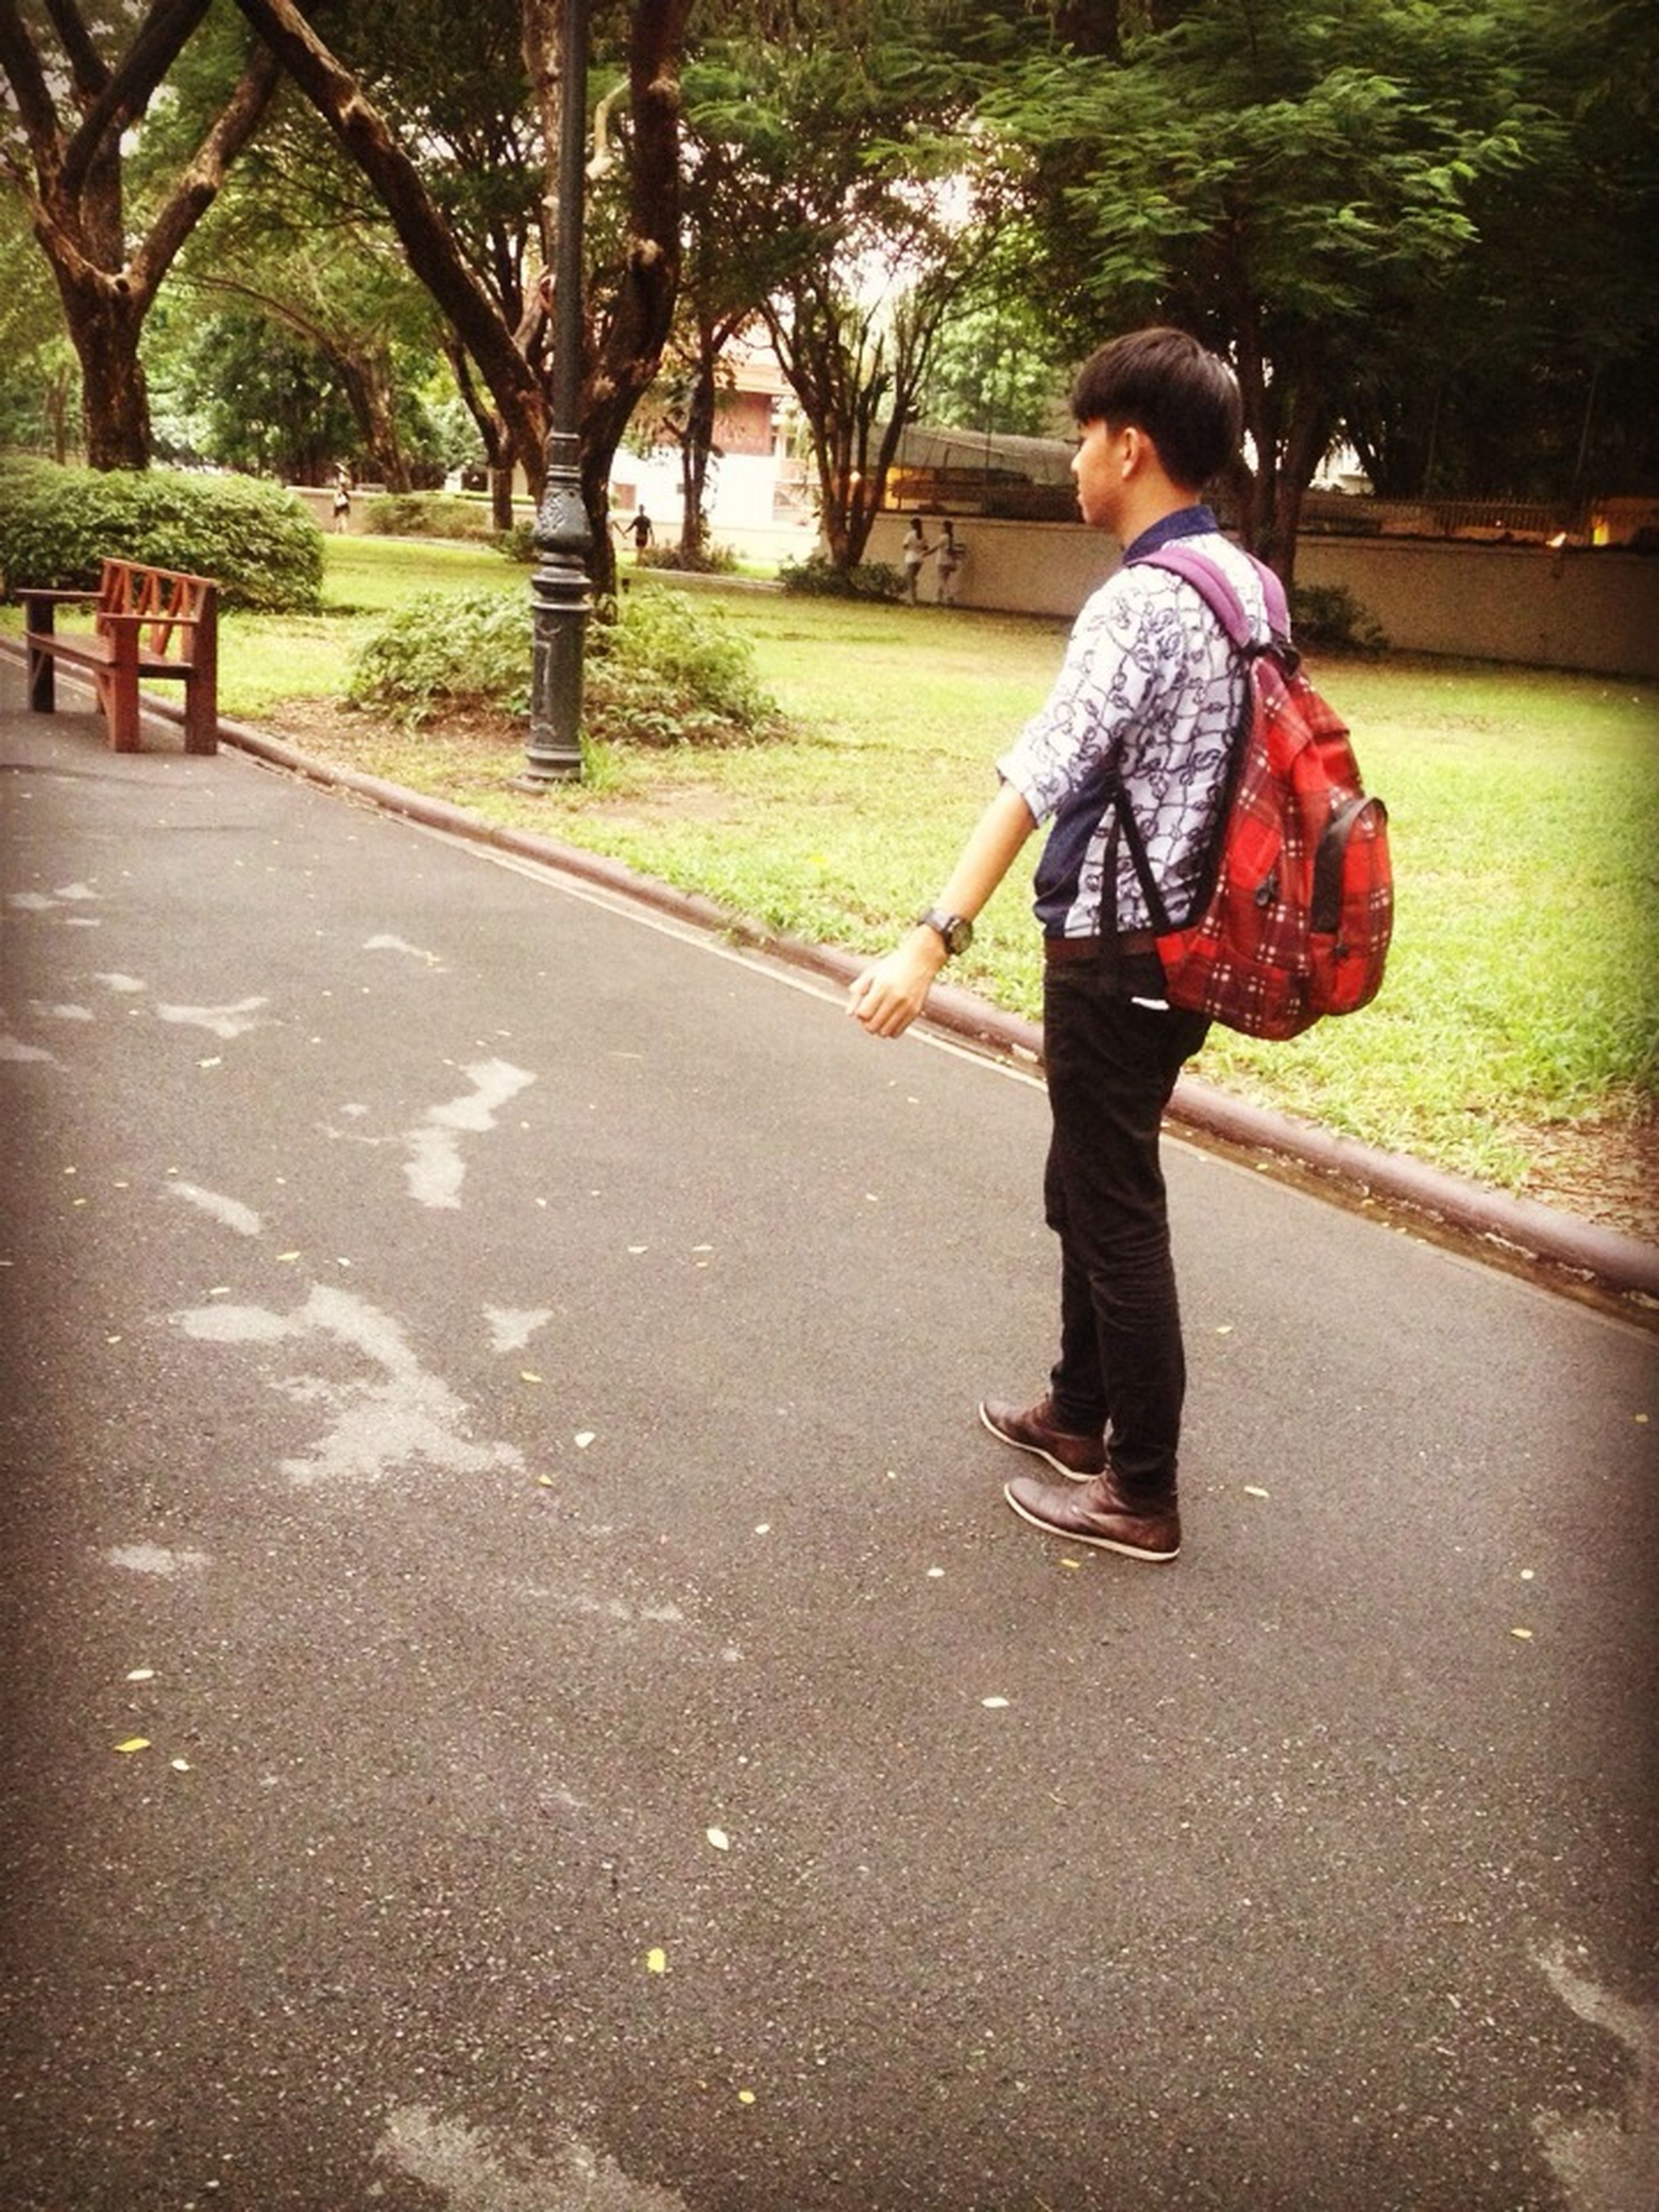 full length, childhood, casual clothing, lifestyles, elementary age, person, leisure activity, girls, boys, street, tree, road, innocence, walking, standing, park - man made space, cute, day